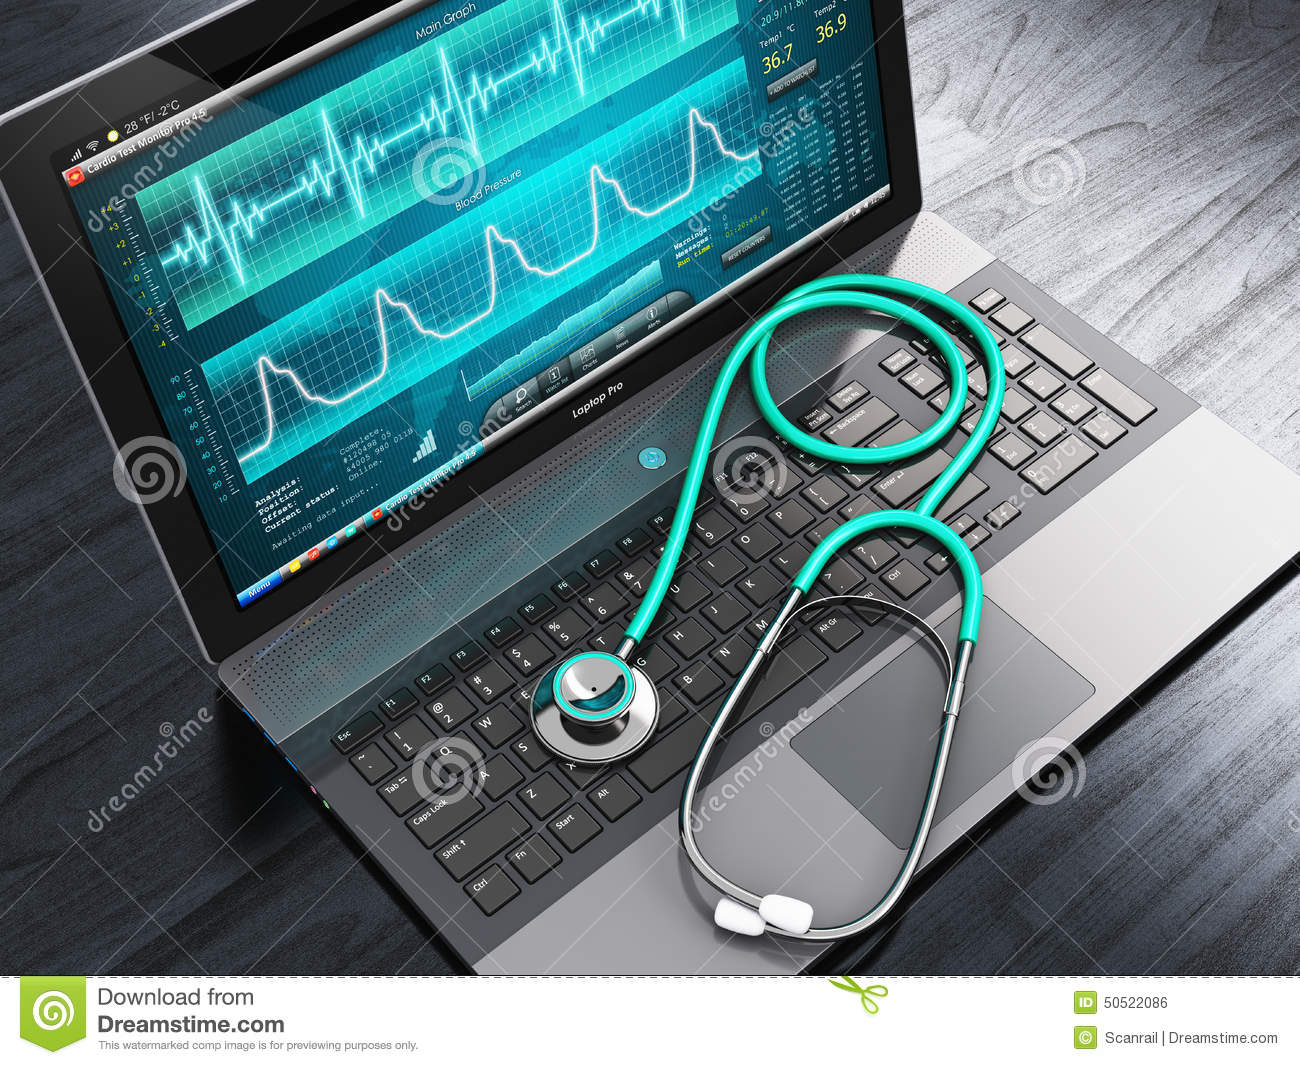 heart beat diagram vauxhall vectra abs wiring laptop with medical diagnostic software and stethoscope stock illustration - image: 50522086